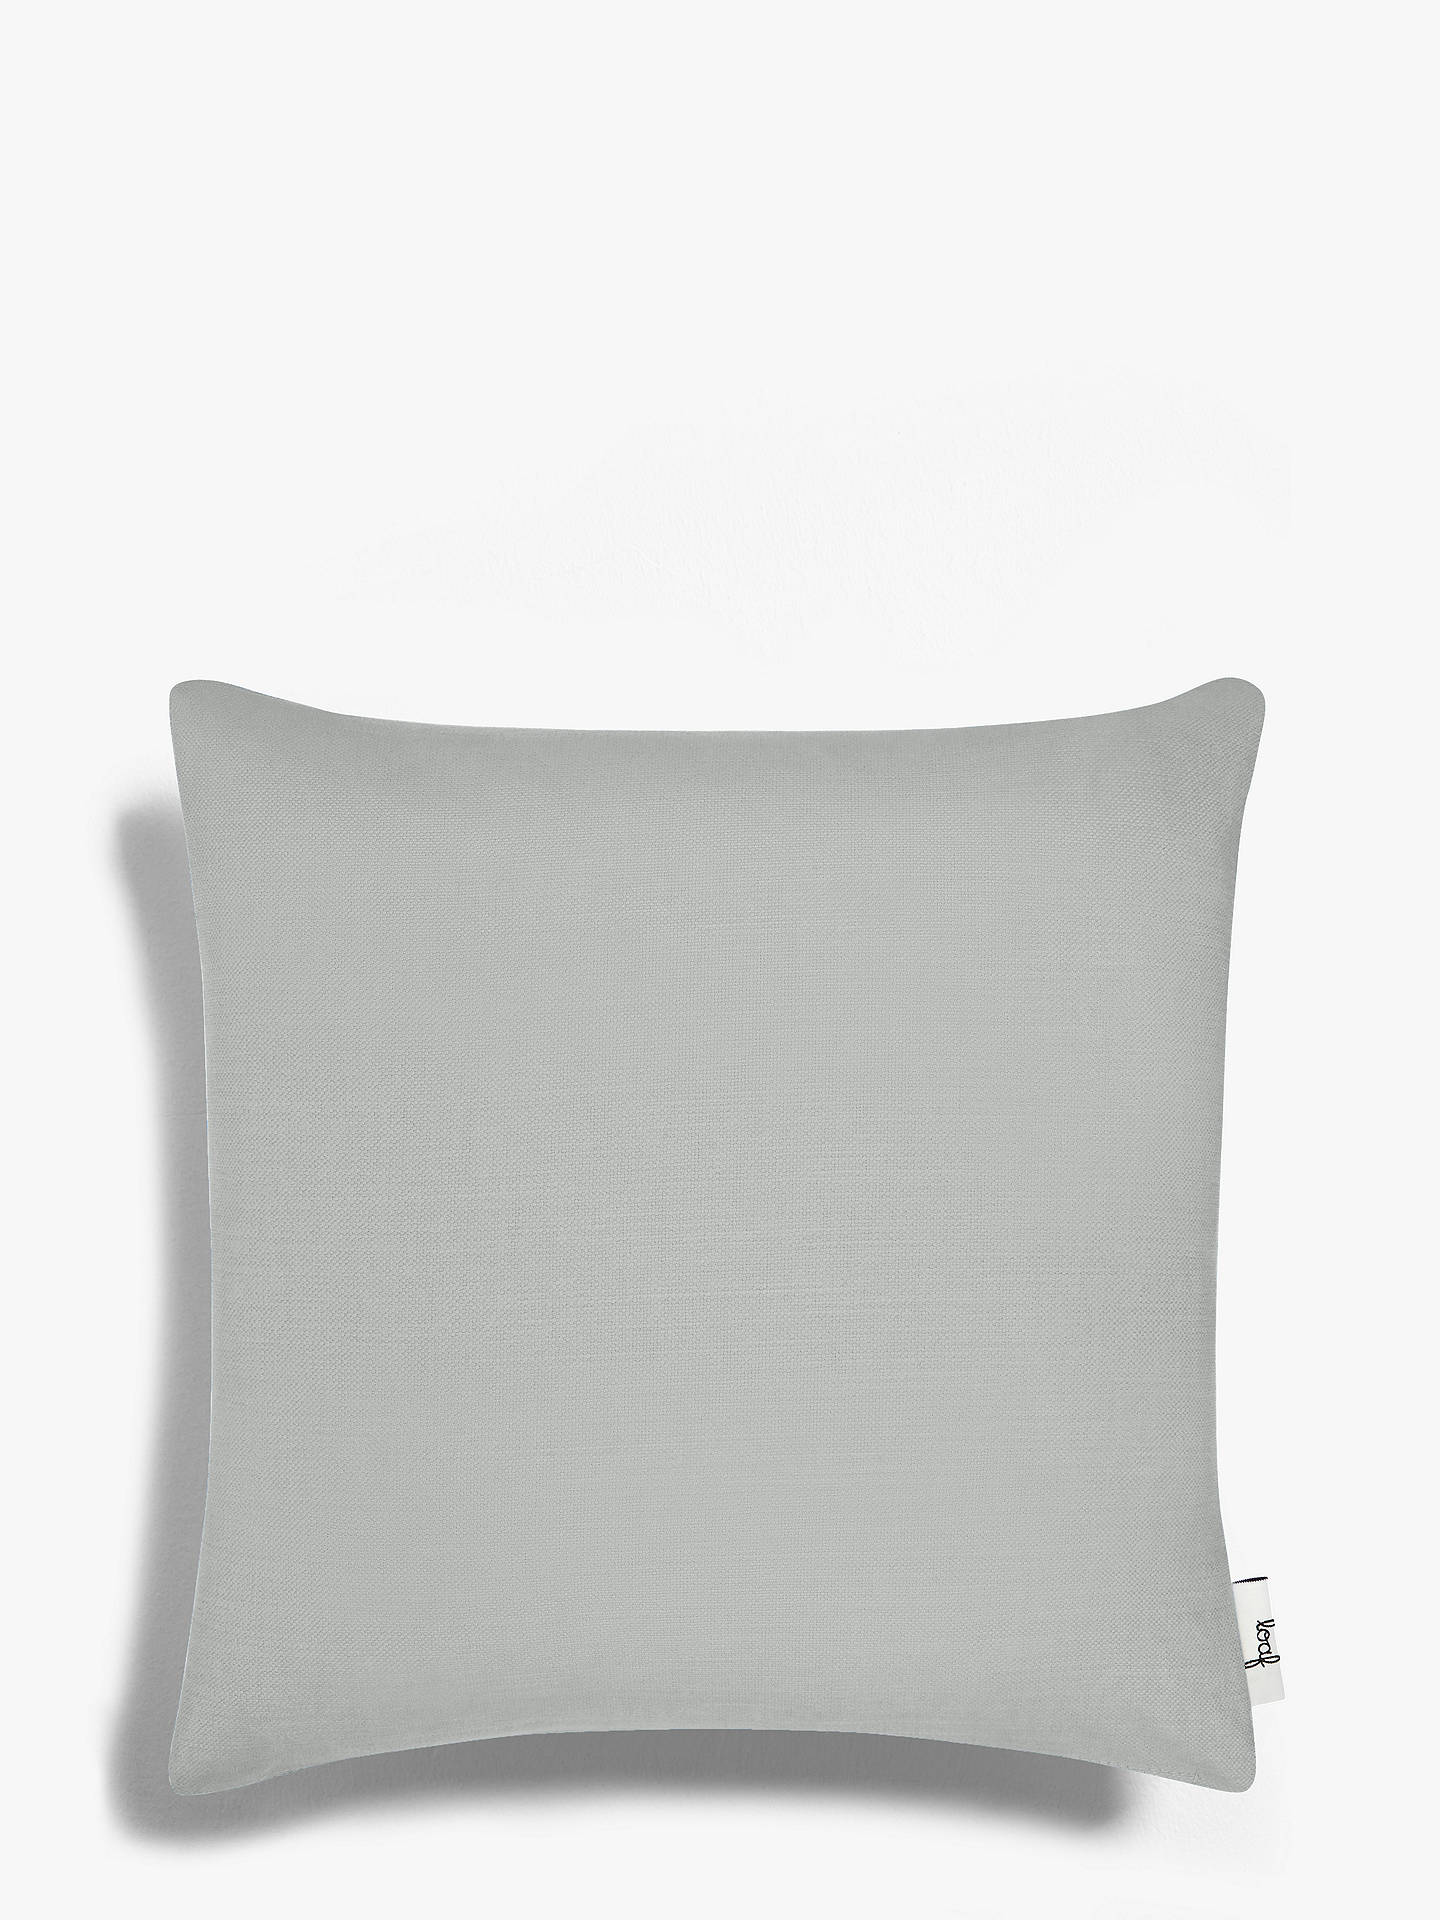 BuySquare Scatter Cushion by Loaf at John Lewis, Clever Softie Pewter Online at johnlewis.com